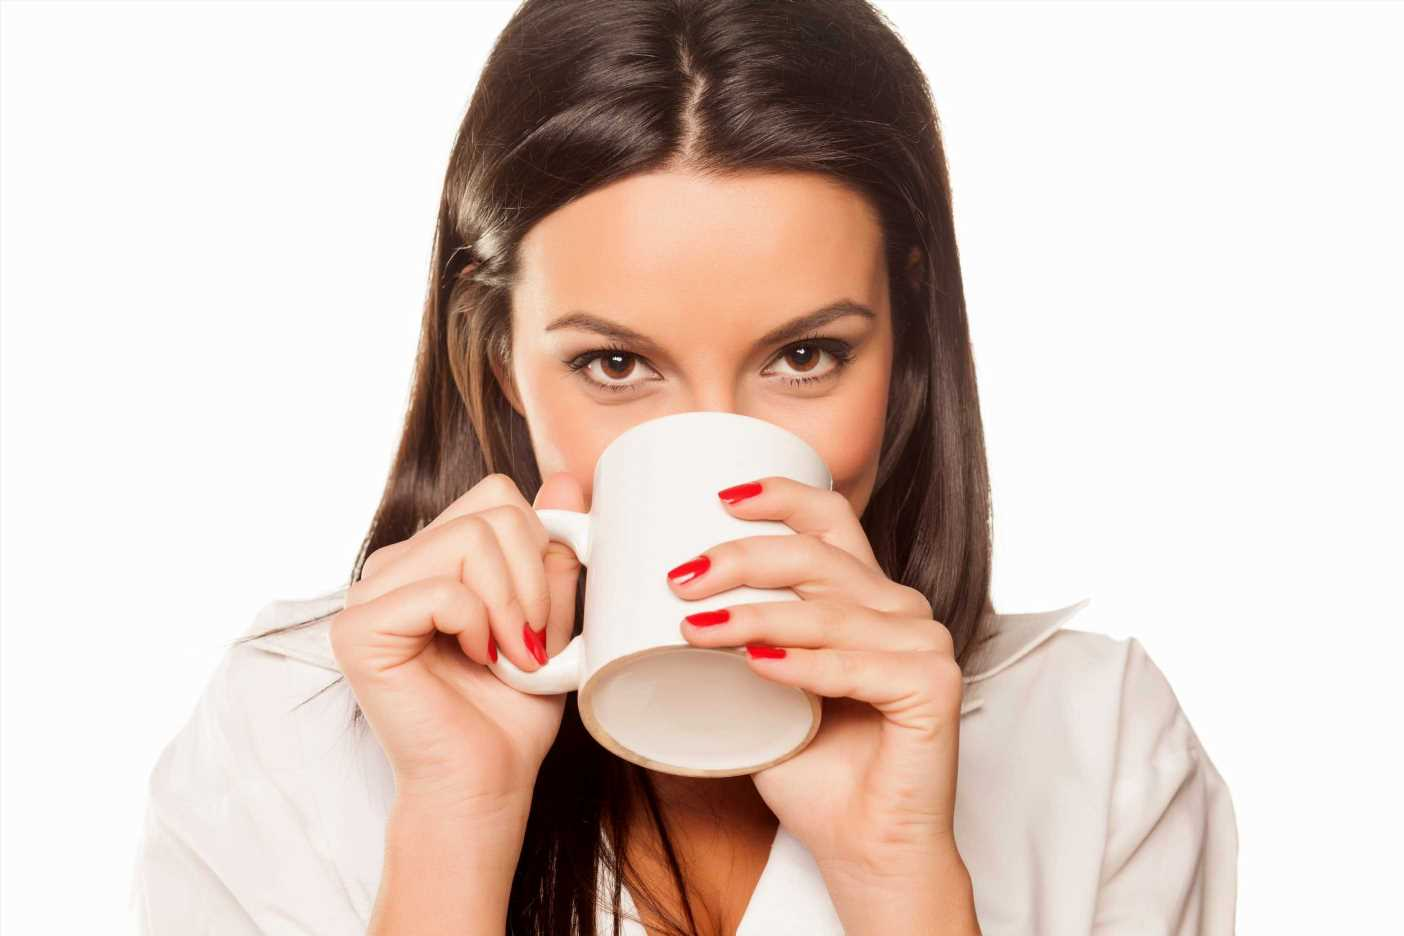 Lose weight while you SLEEP by drinking tea before bed, says expert